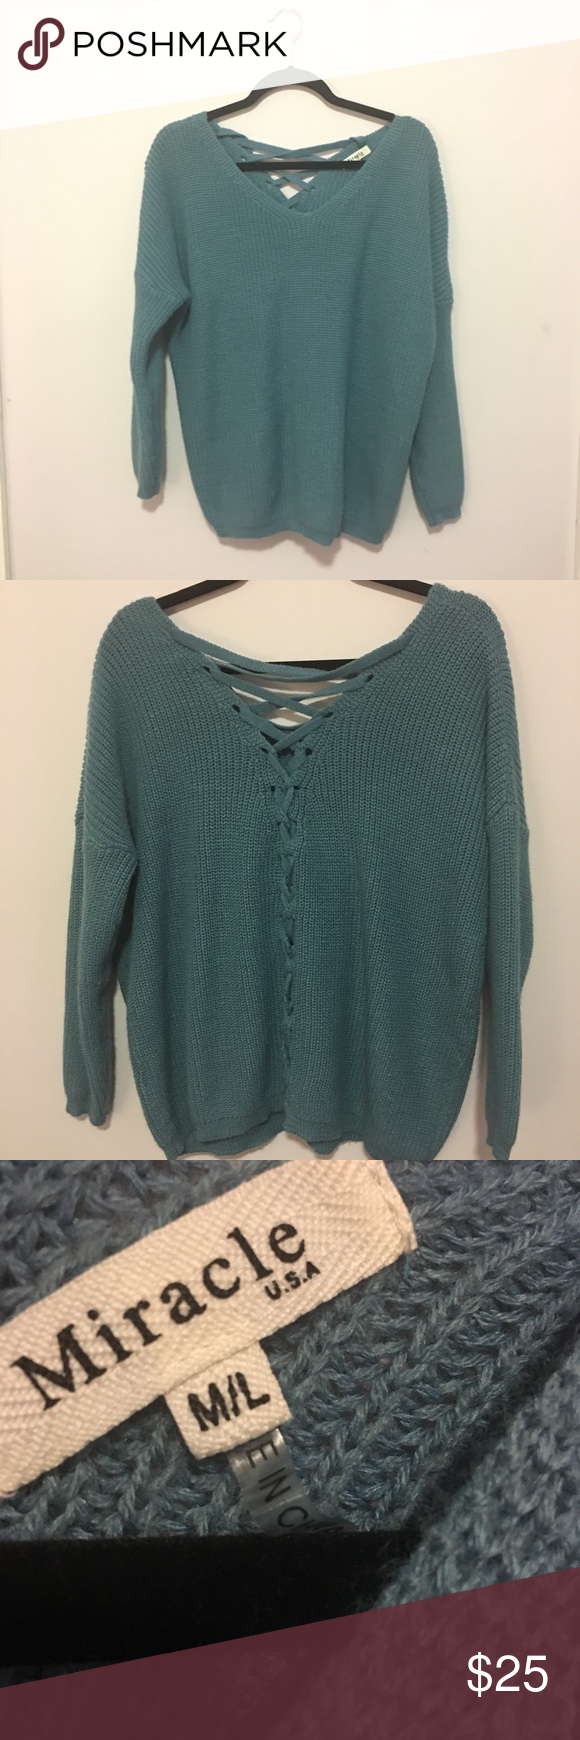 8d58937117 Miracle USA lace up back sweater in dusty blue Size M L Oversized fit Lace  up back detail Preowned but very good condition Color is a light blue   dusty blue ...